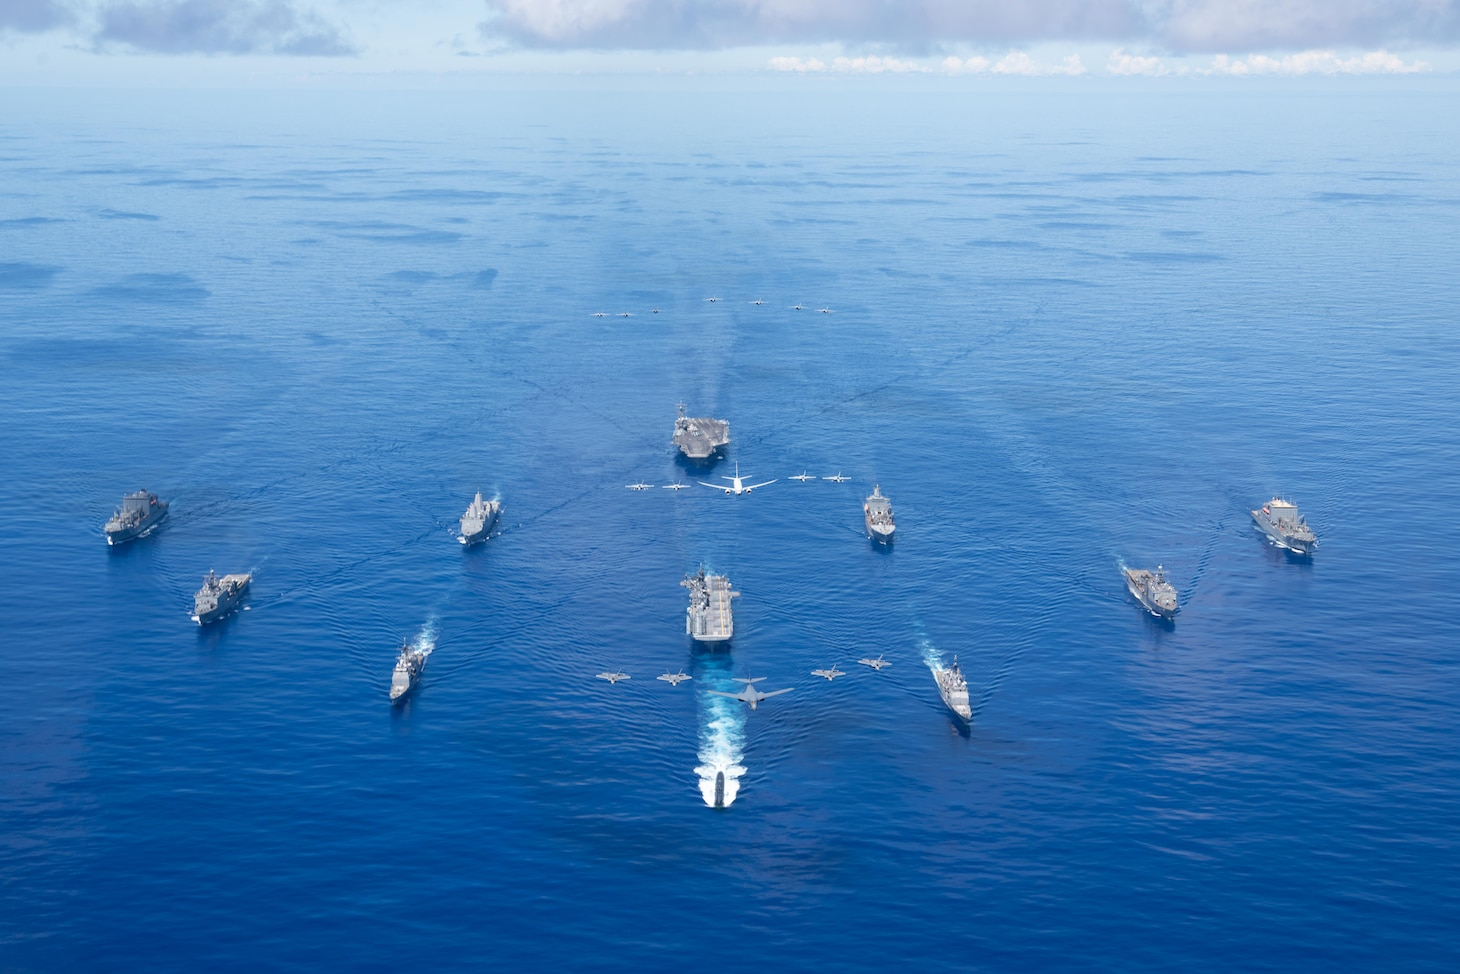 PHILIPPINE SEA (Sept. 25, 2020) From left, USNS Charles Drew (T-AKE 10), USS Comstock (LSD 45), USS Shiloh (CG 67), USS New Orleans (LPD 18), USS Chicago (SSN 721), USS America (LHA 6), USS Ronald Reagan (CVN 76), USNS John Ericsson (T-AO 194), USS Antietam (CG 54), USS Germantown (LSD 42), and USNS Sacagawea (T-AKE 2) steam in formation while E/A-18G Growlers and FA-18E Super Hornets from Carrier Air Wing (CVW) 5, a P-8 Poseidon from Commander Task Force 72,  and U.S. Air Force F-22 Raptors and  a B-1B Bomber fly over the formation in support of Valiant Shield 2020. Valiant Shield is a U.S. only, biennial field training exercise (FTX) with a focus on integration of joint training in a blue-water environment among U.S. forces. This training enables real-world proficiency in sustaining joint forces through detecting, locating, tracking and engaging units at sea, in the air, on land and in cyberspace in response to a range of mission areas. (U.S. Navy photo by Mass Communication Specialist 3rd Class Jason Tarleton)